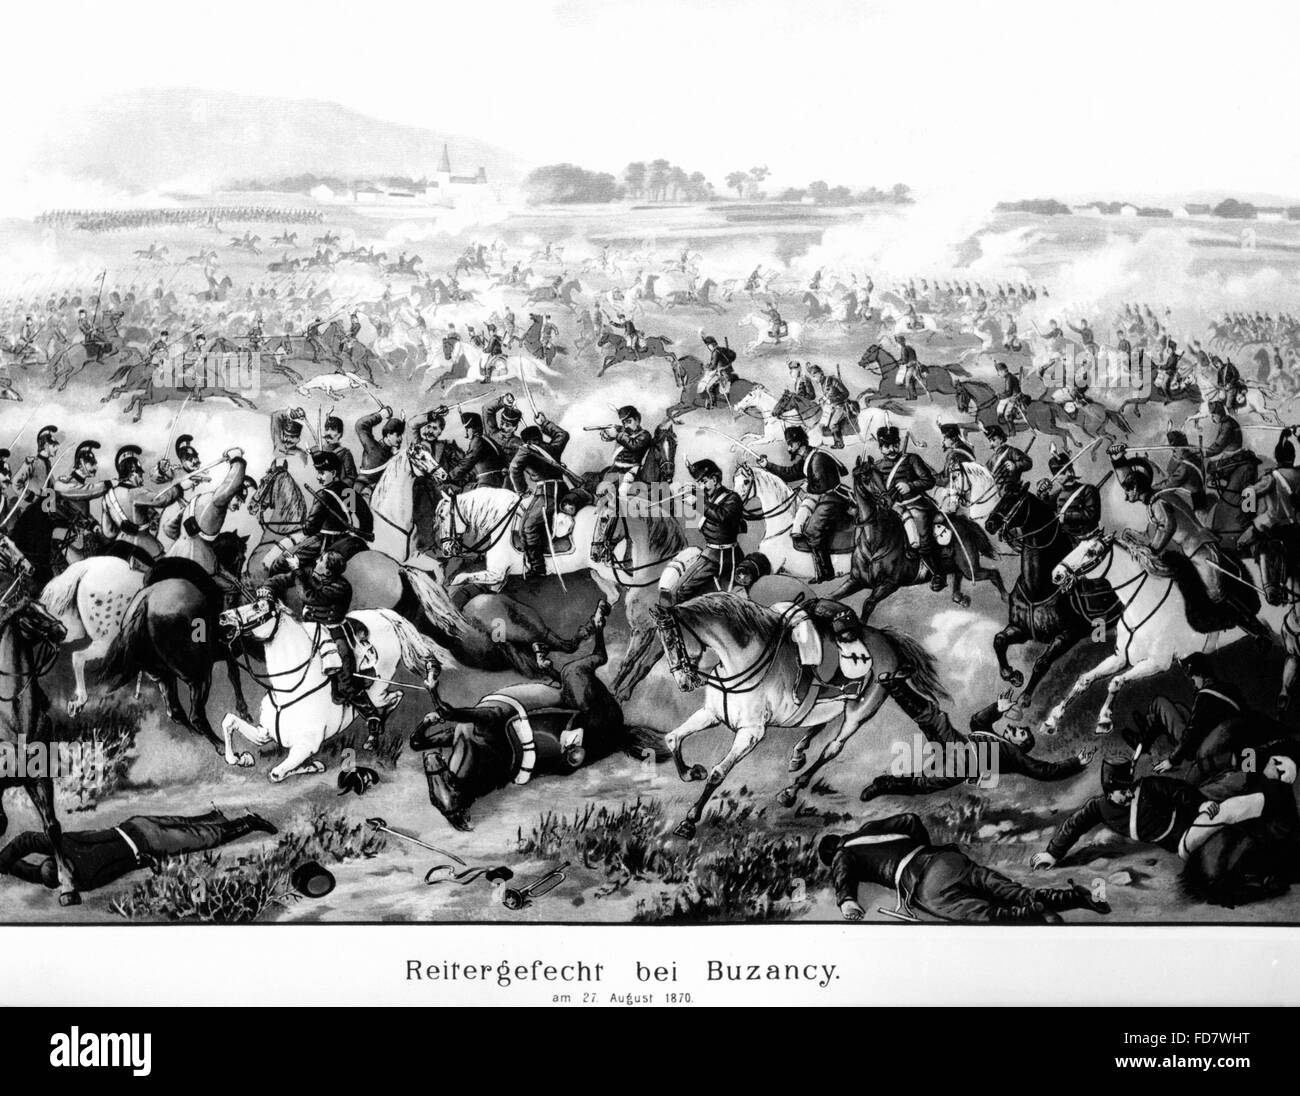 Cavalry fight in the Franco-German War, 27.08.1870 Stock Photo